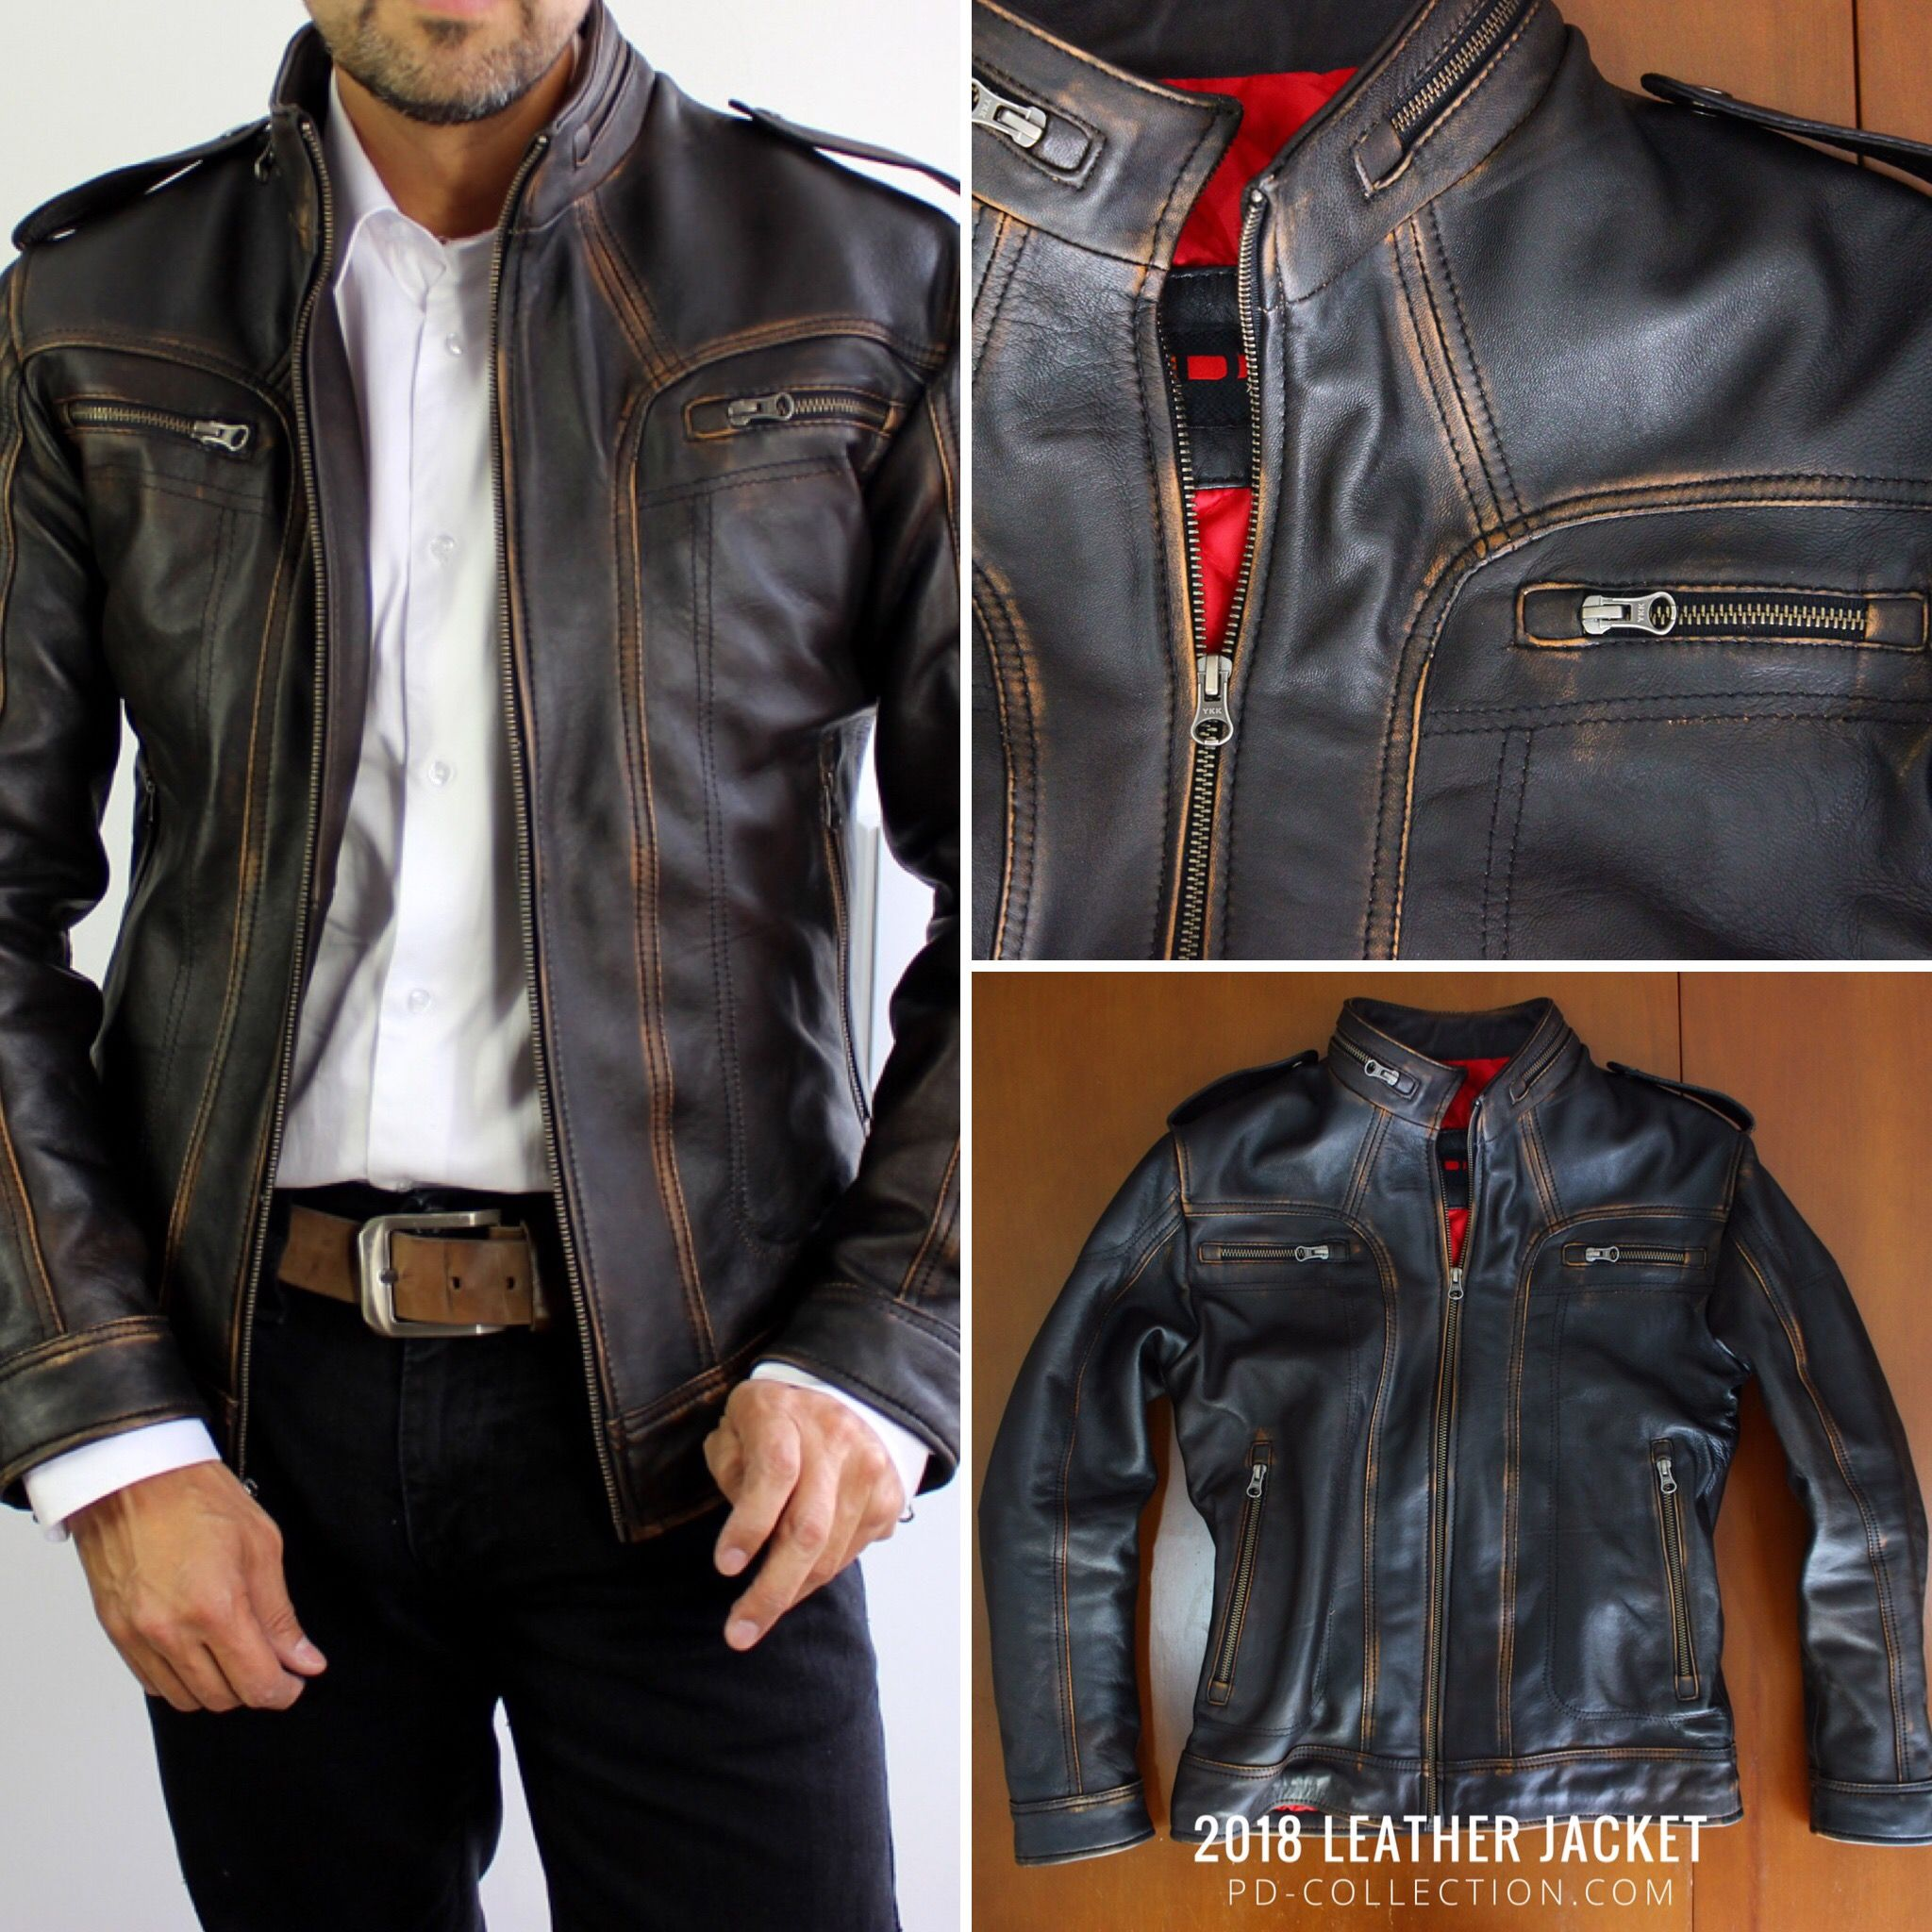 2018 AX Leather Jacket Distressed Black - XSMALL | Leather jackets ...